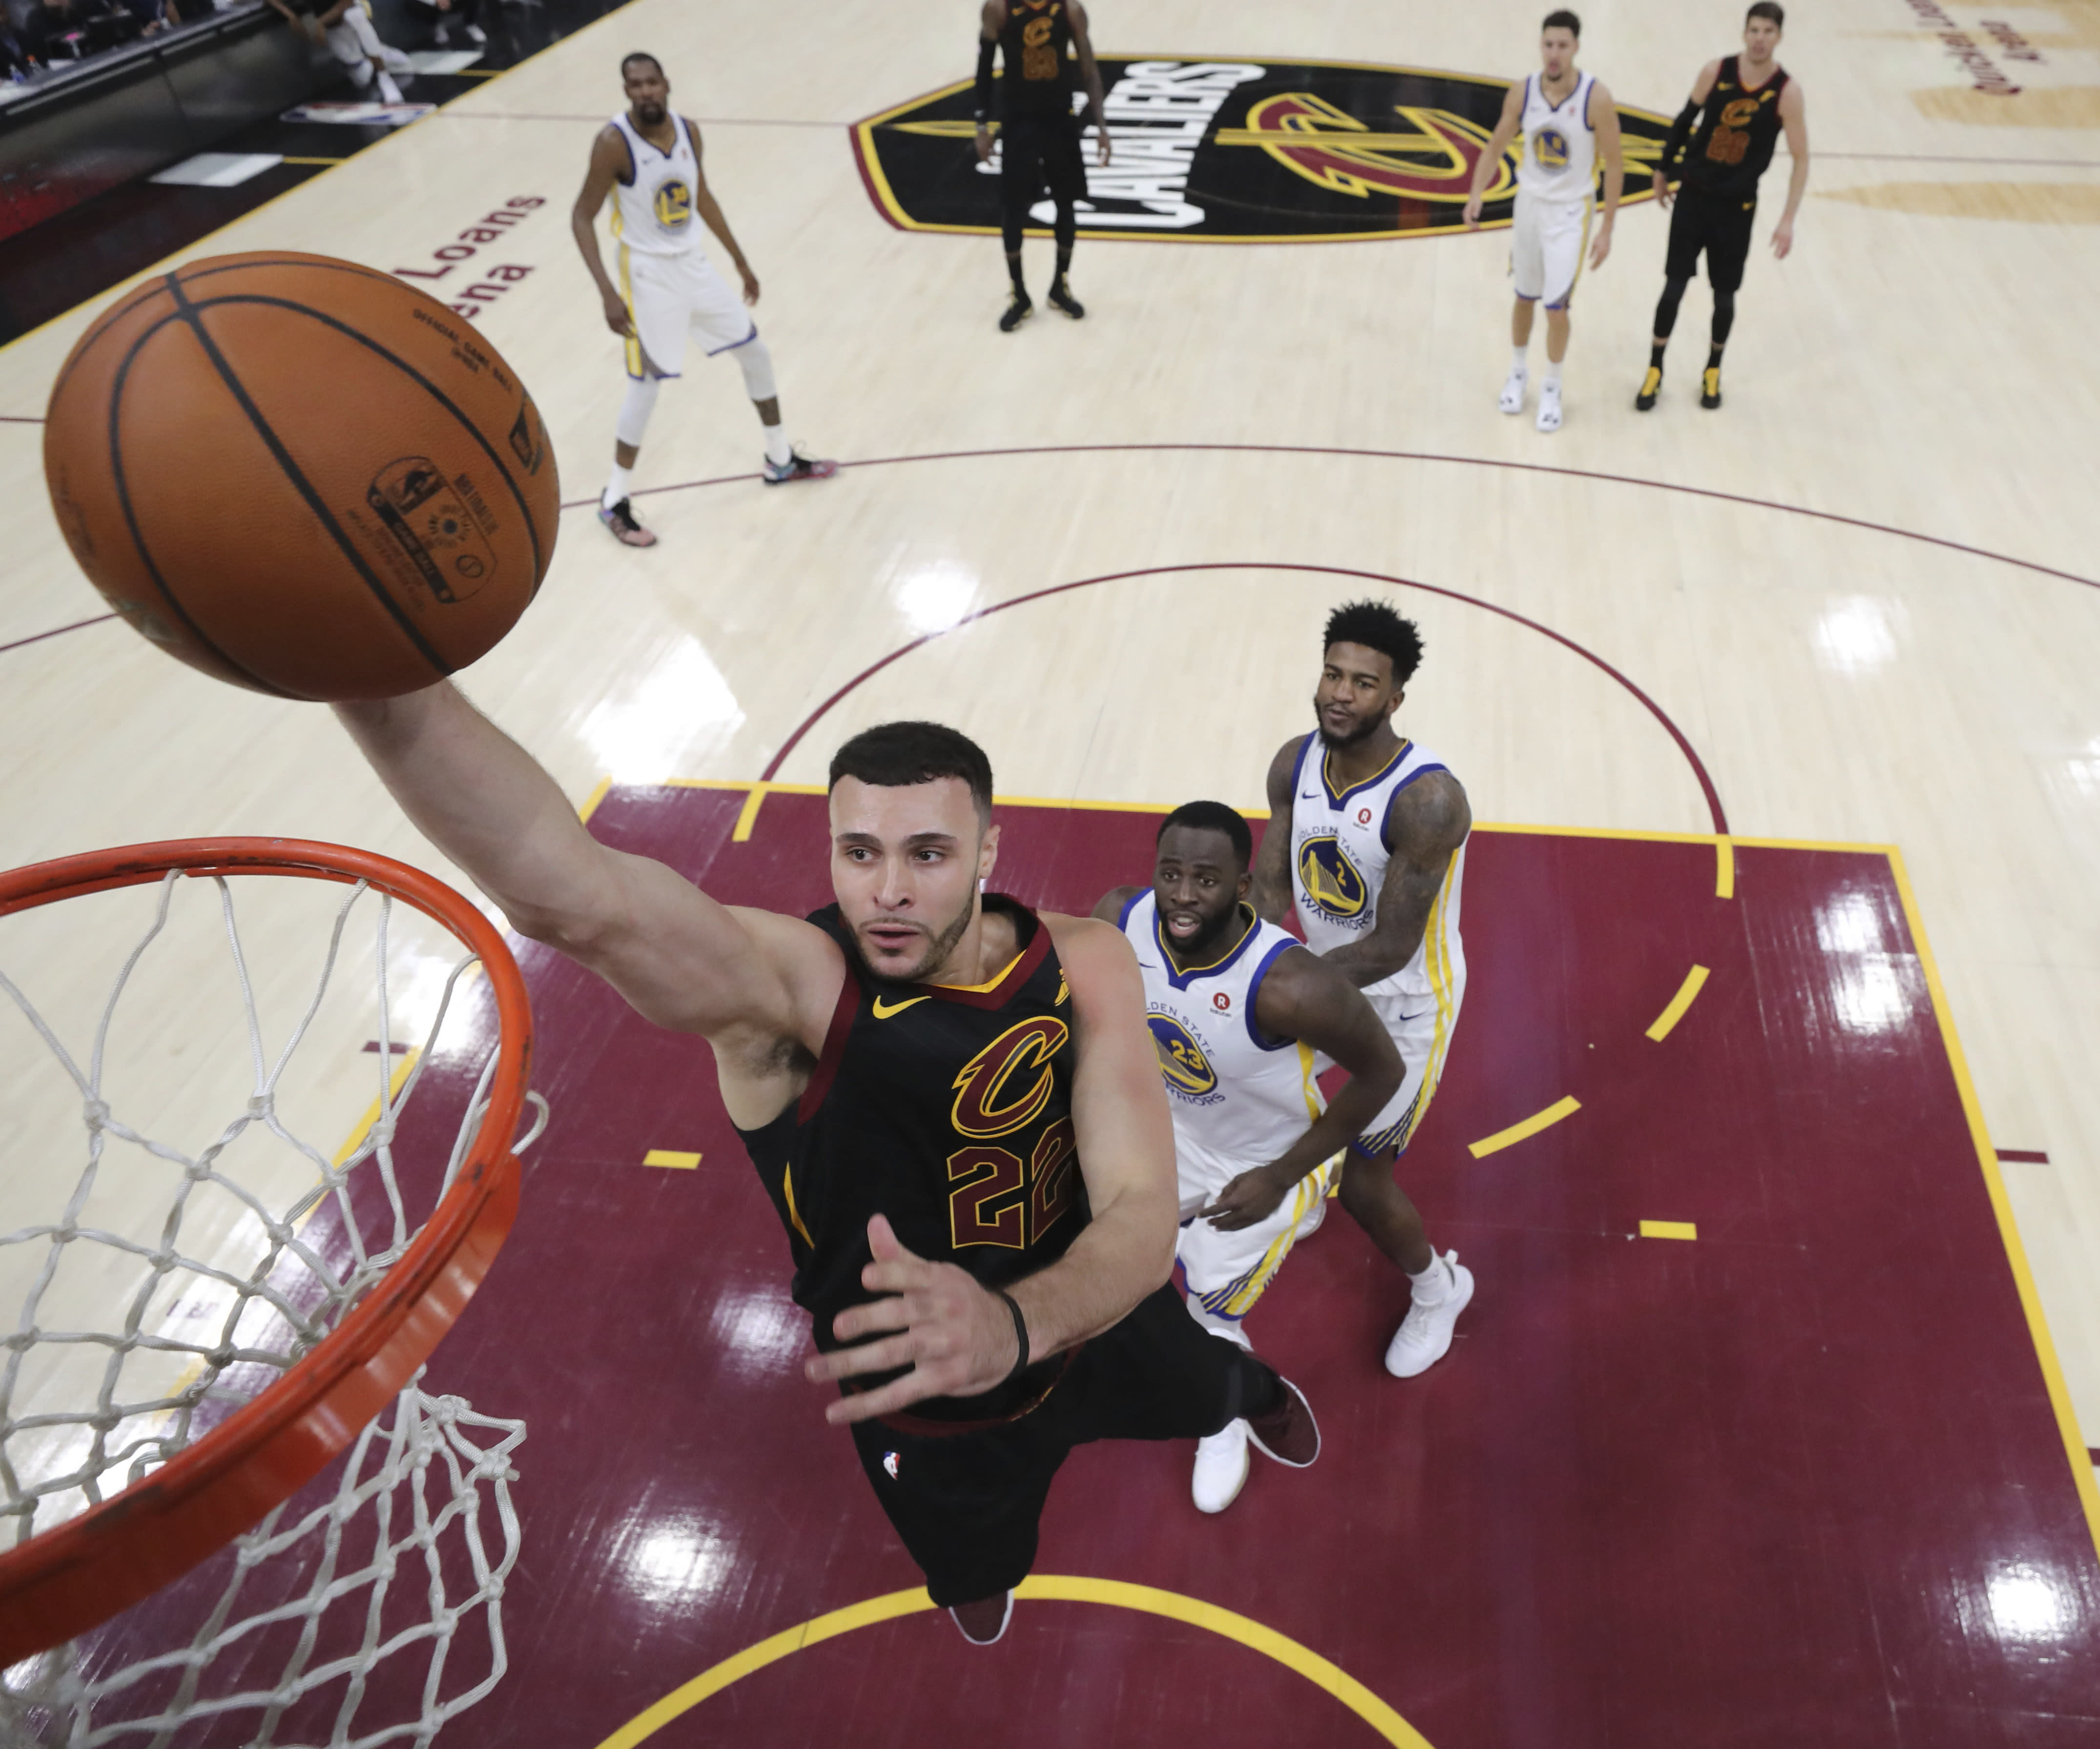 Sources: Larry Nance Jr. agrees to 4-year, $44.8M extension with Cavaliers